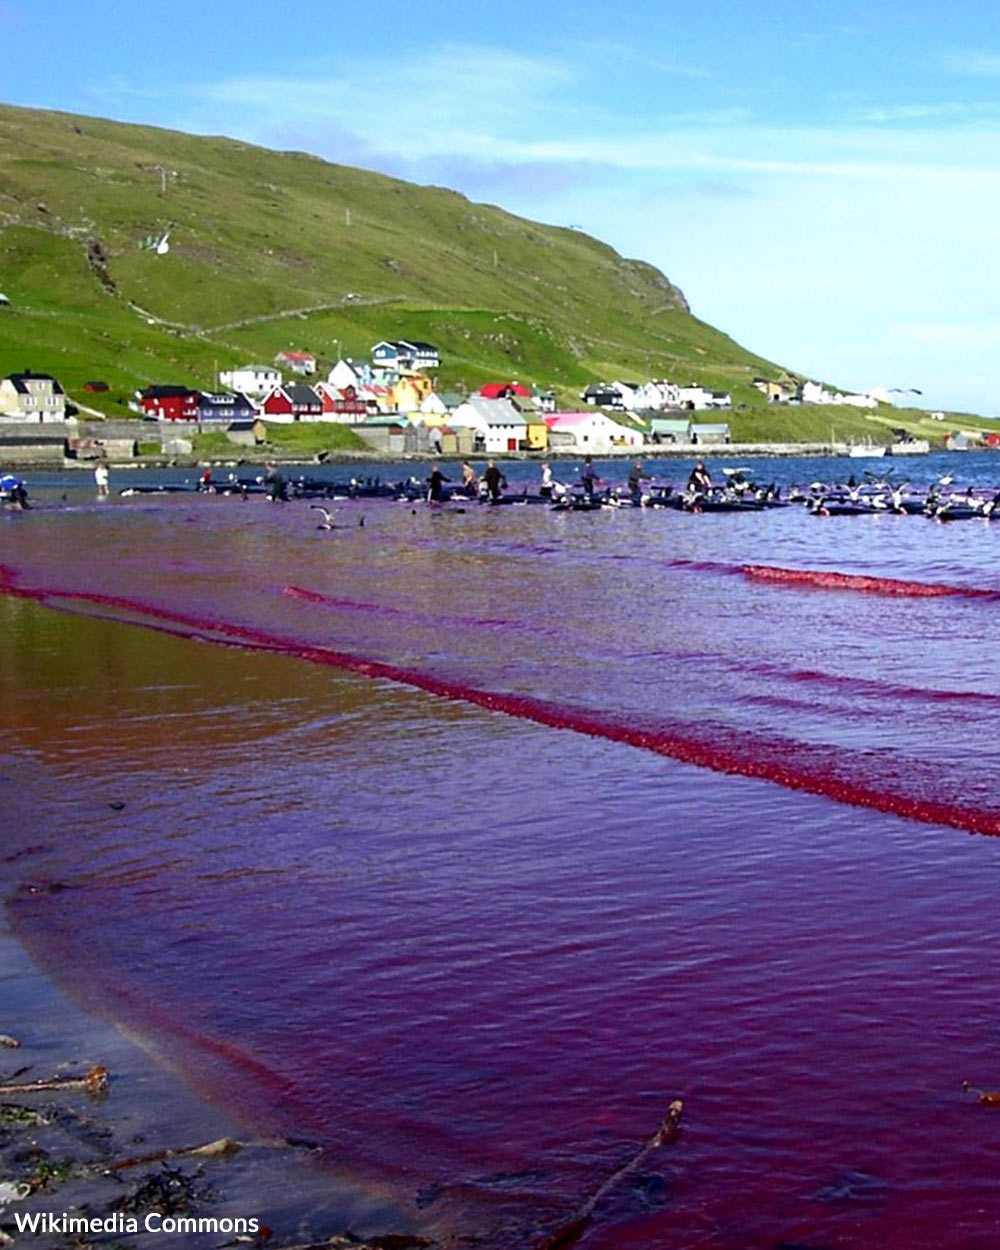 The waters near the Faroe Islands turn red with blood during the annual hunt.